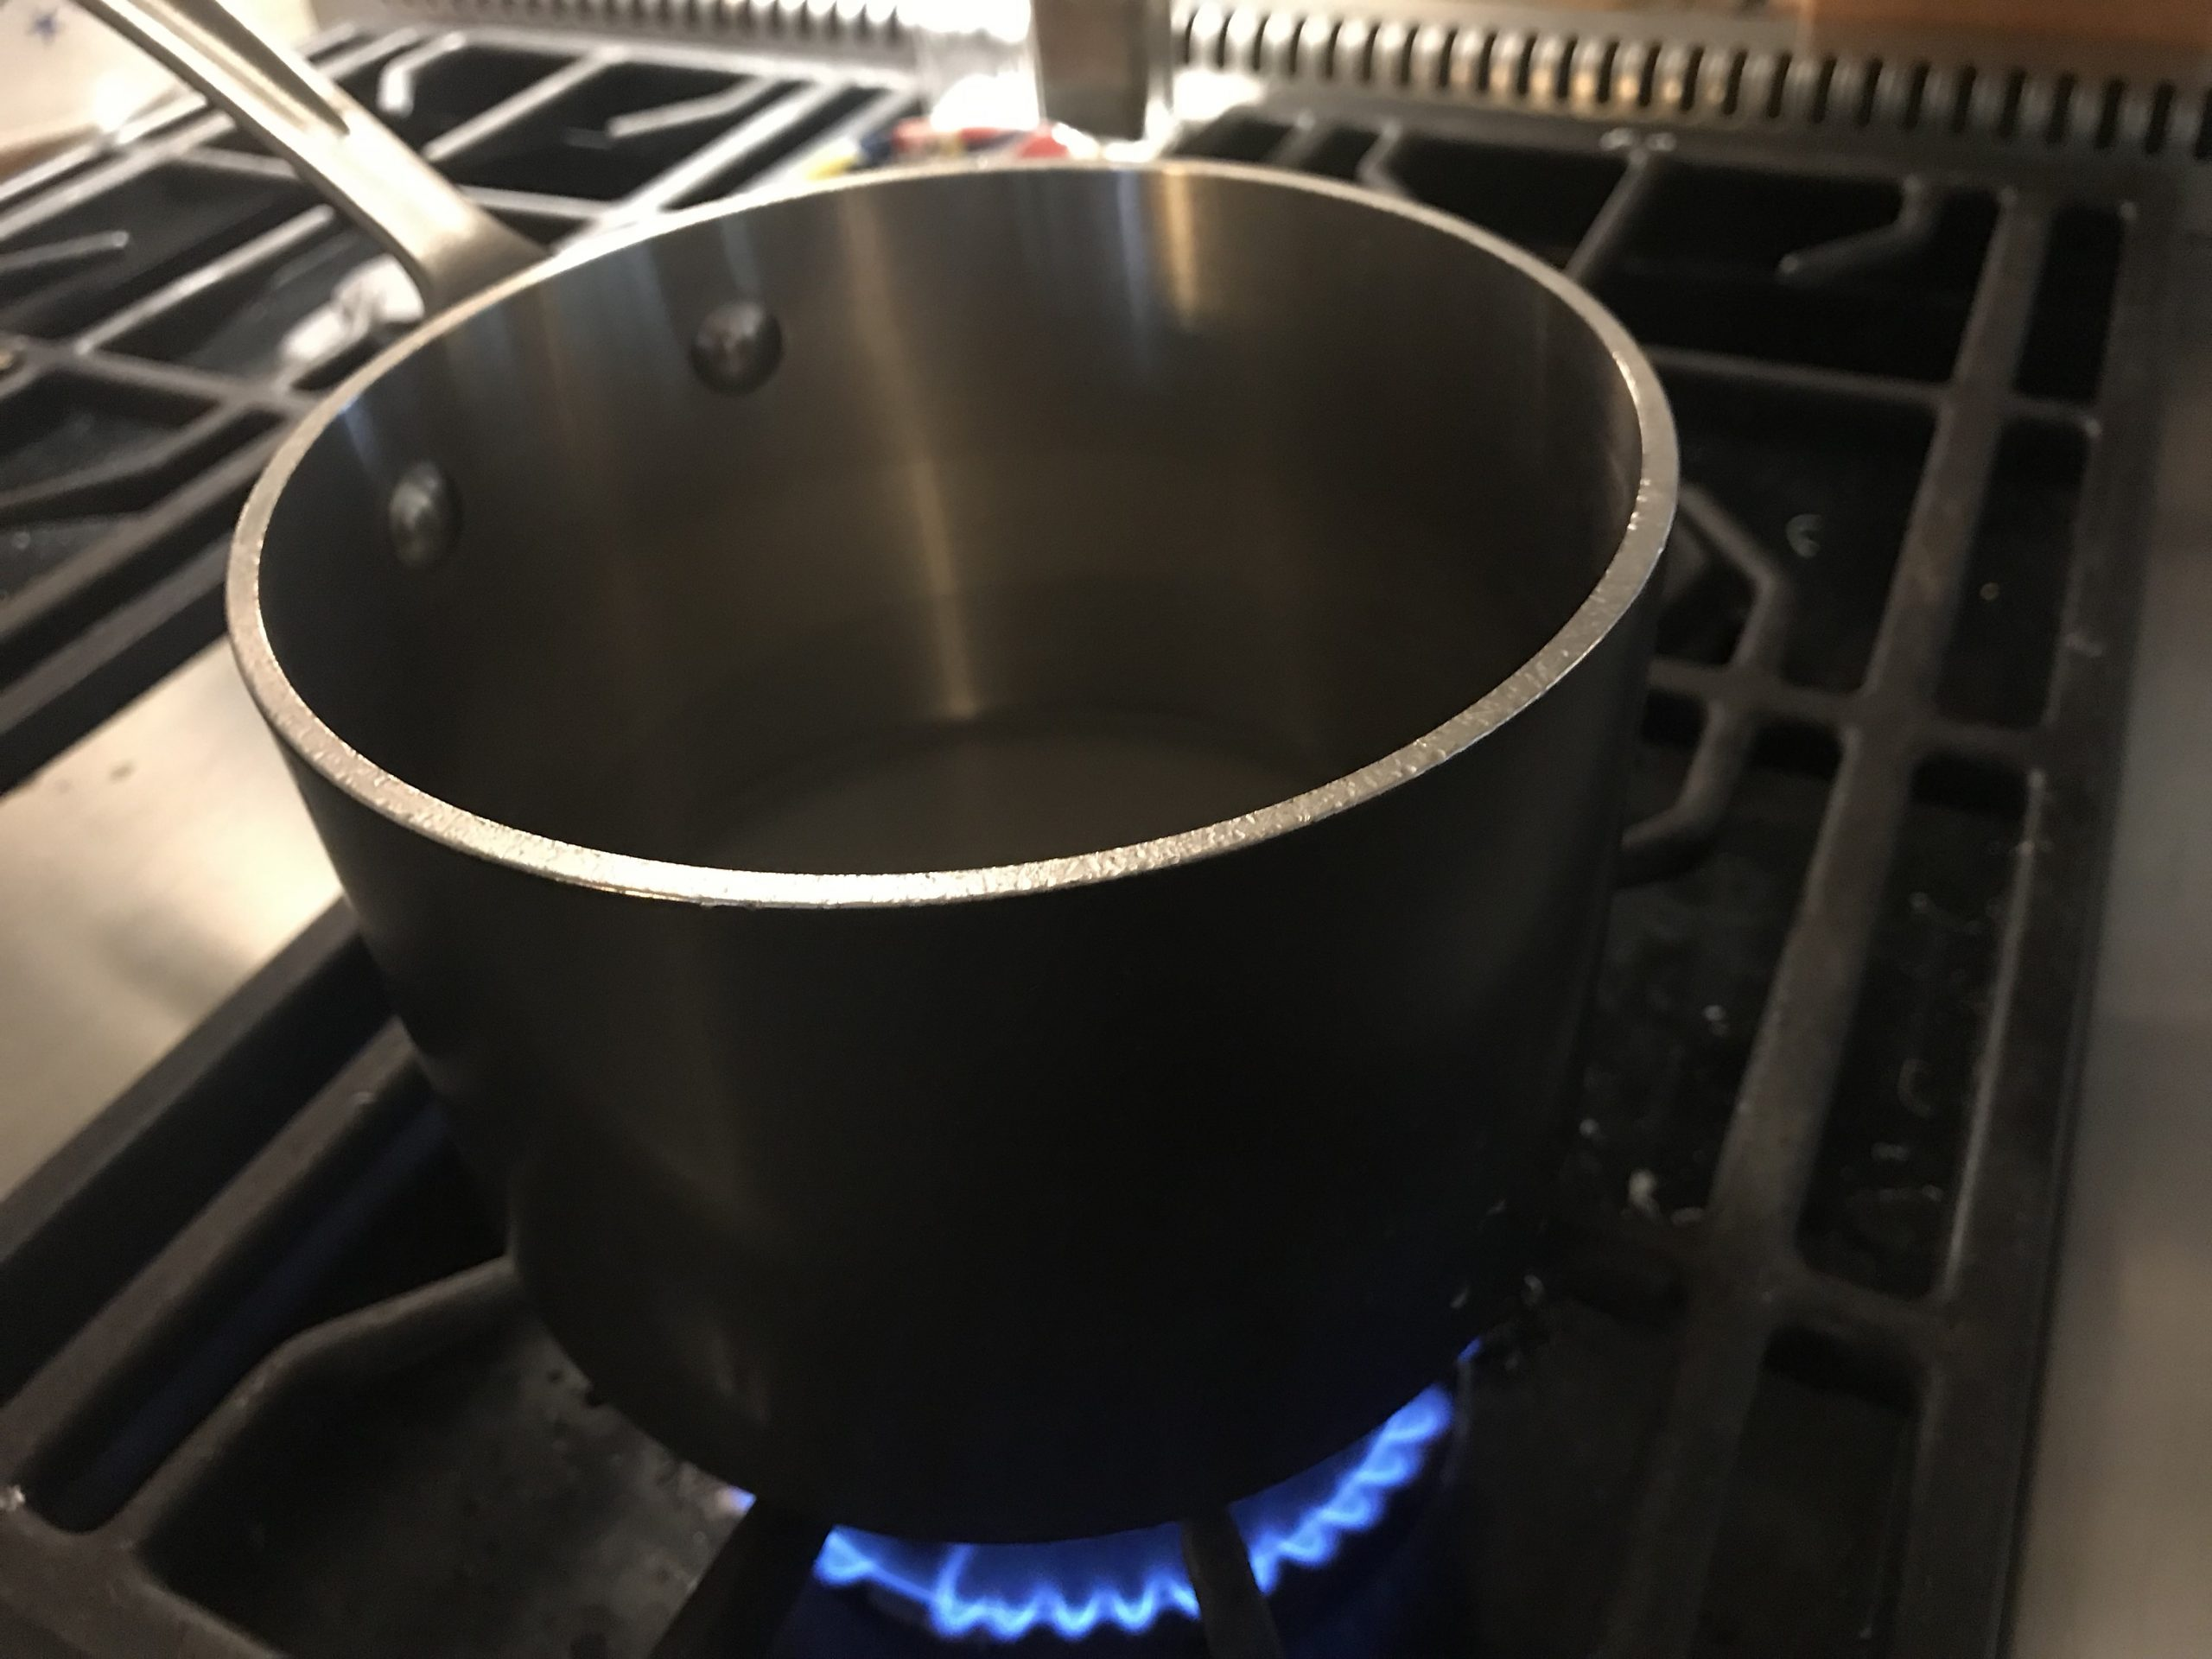 Heating water, sugar, and salt for Flourless Chocolate Cake